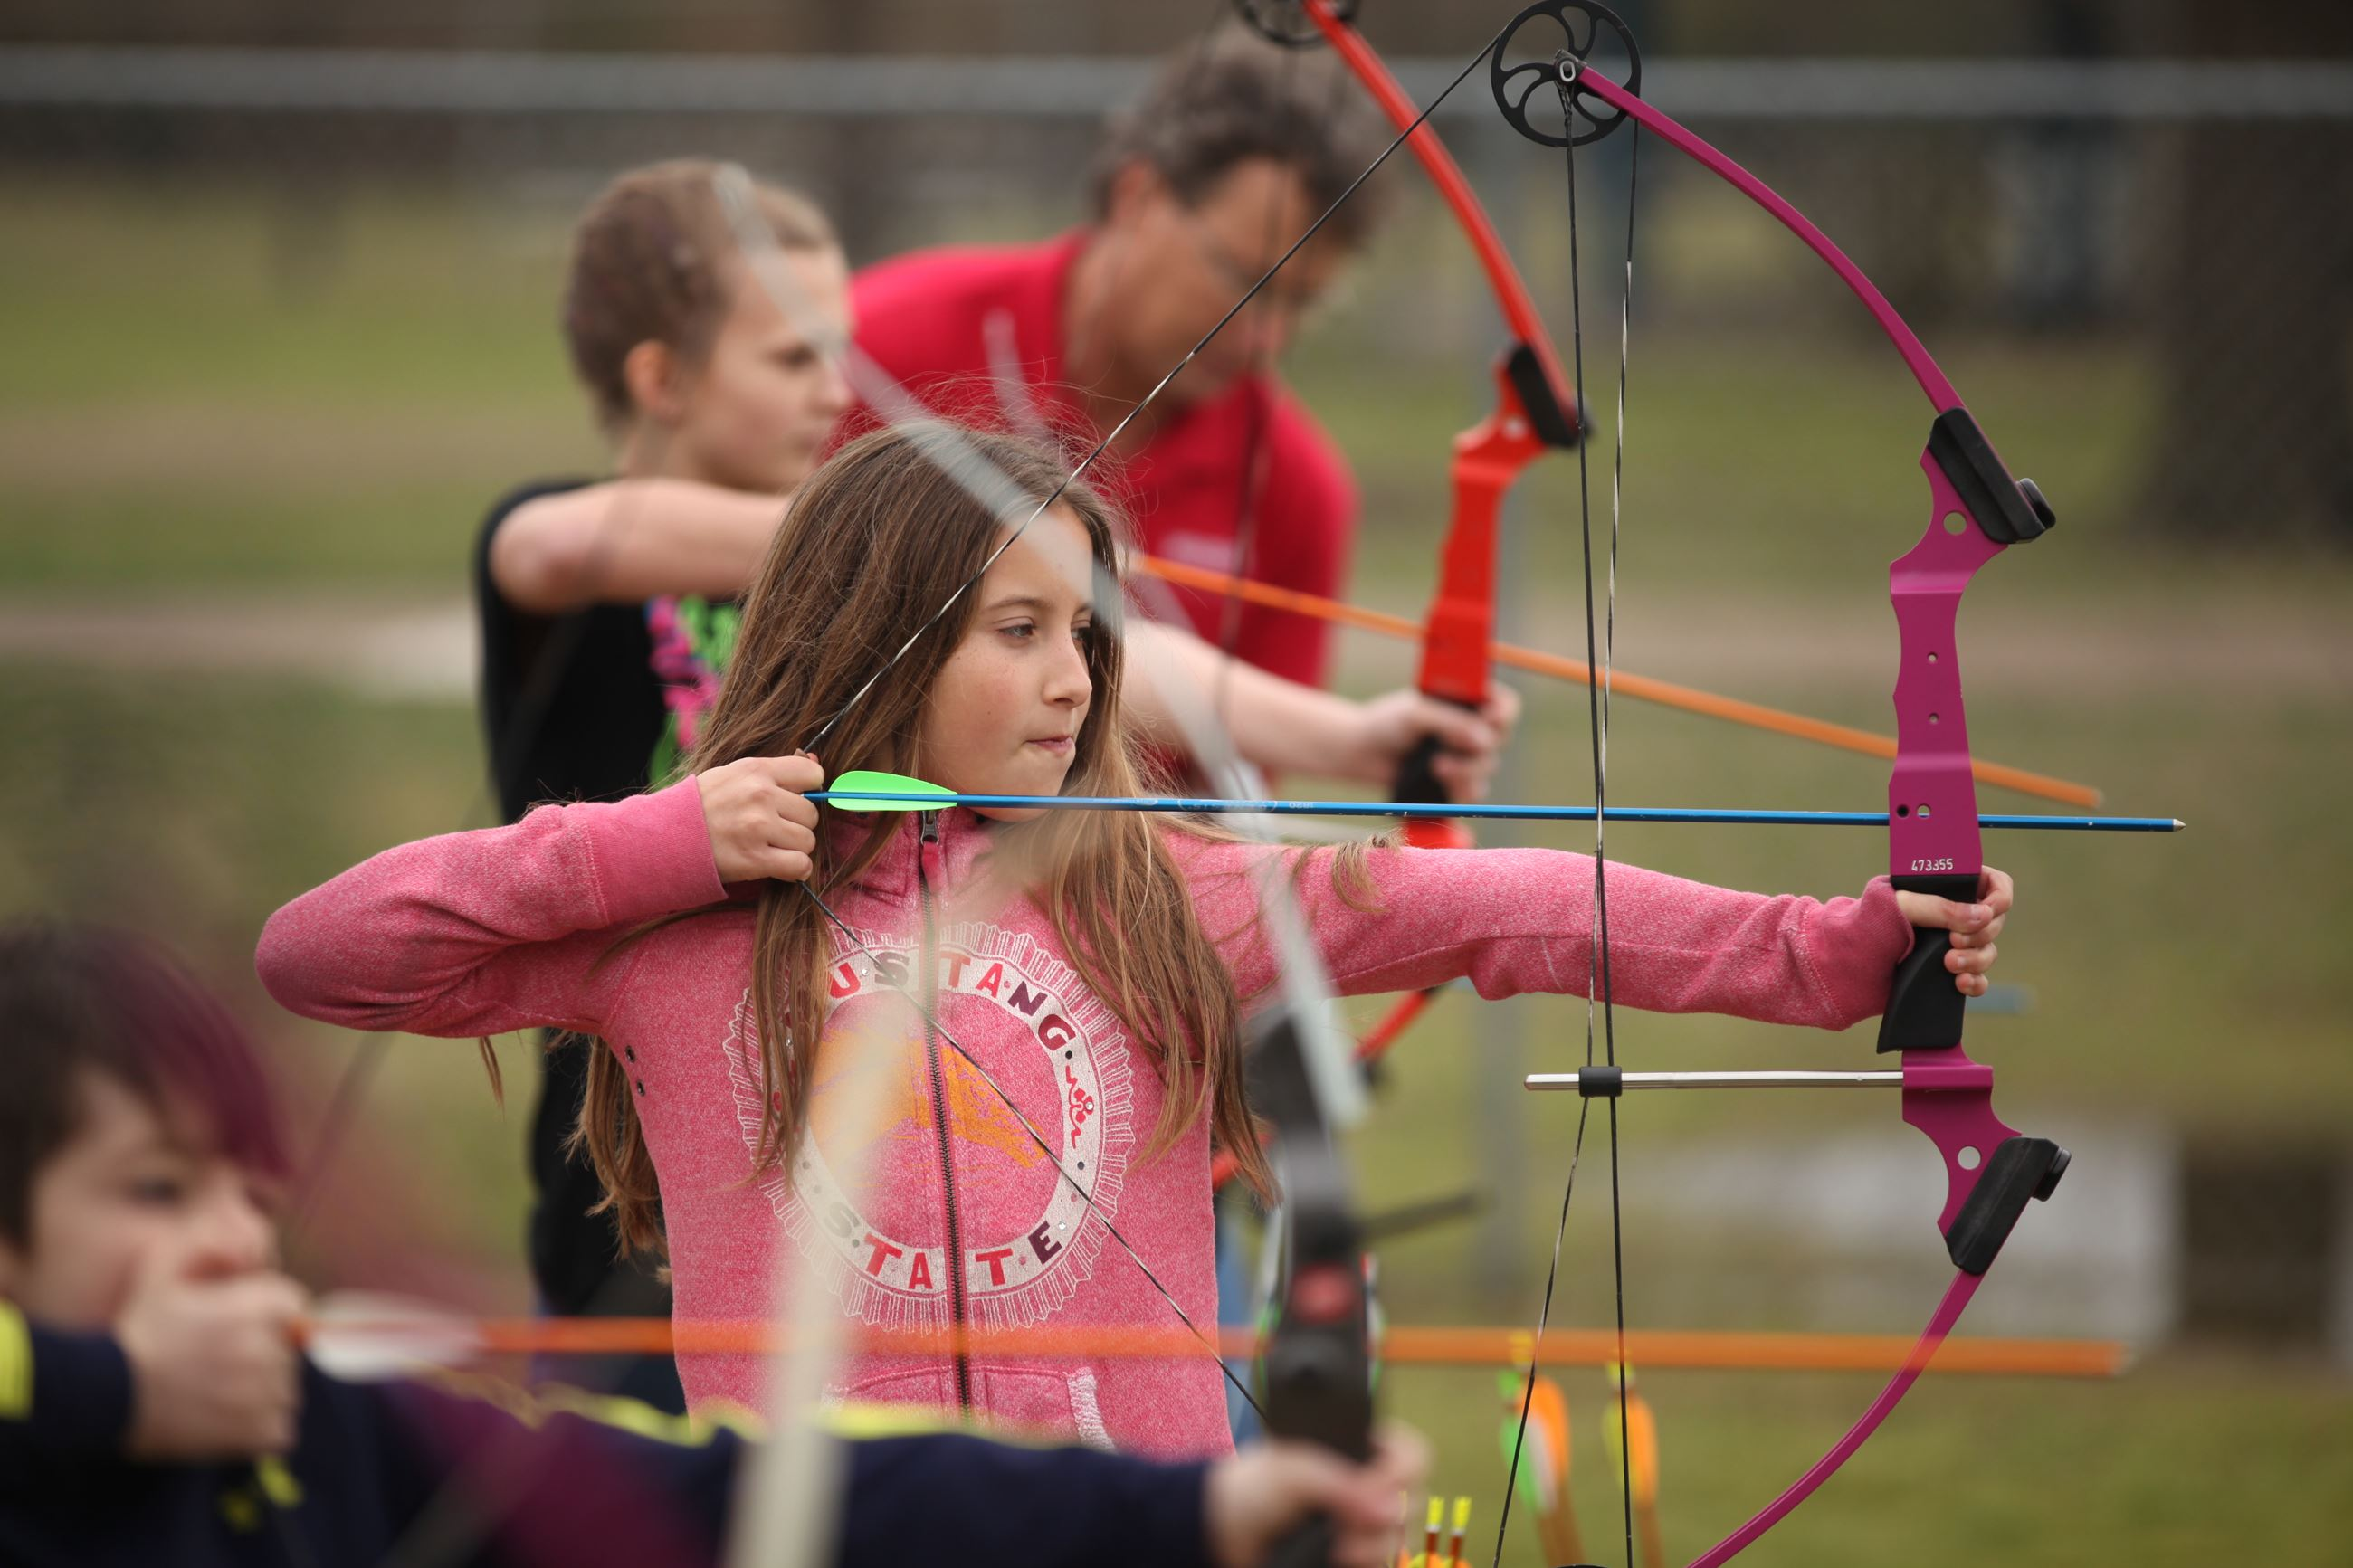 Archery Spring Break Camp 2015